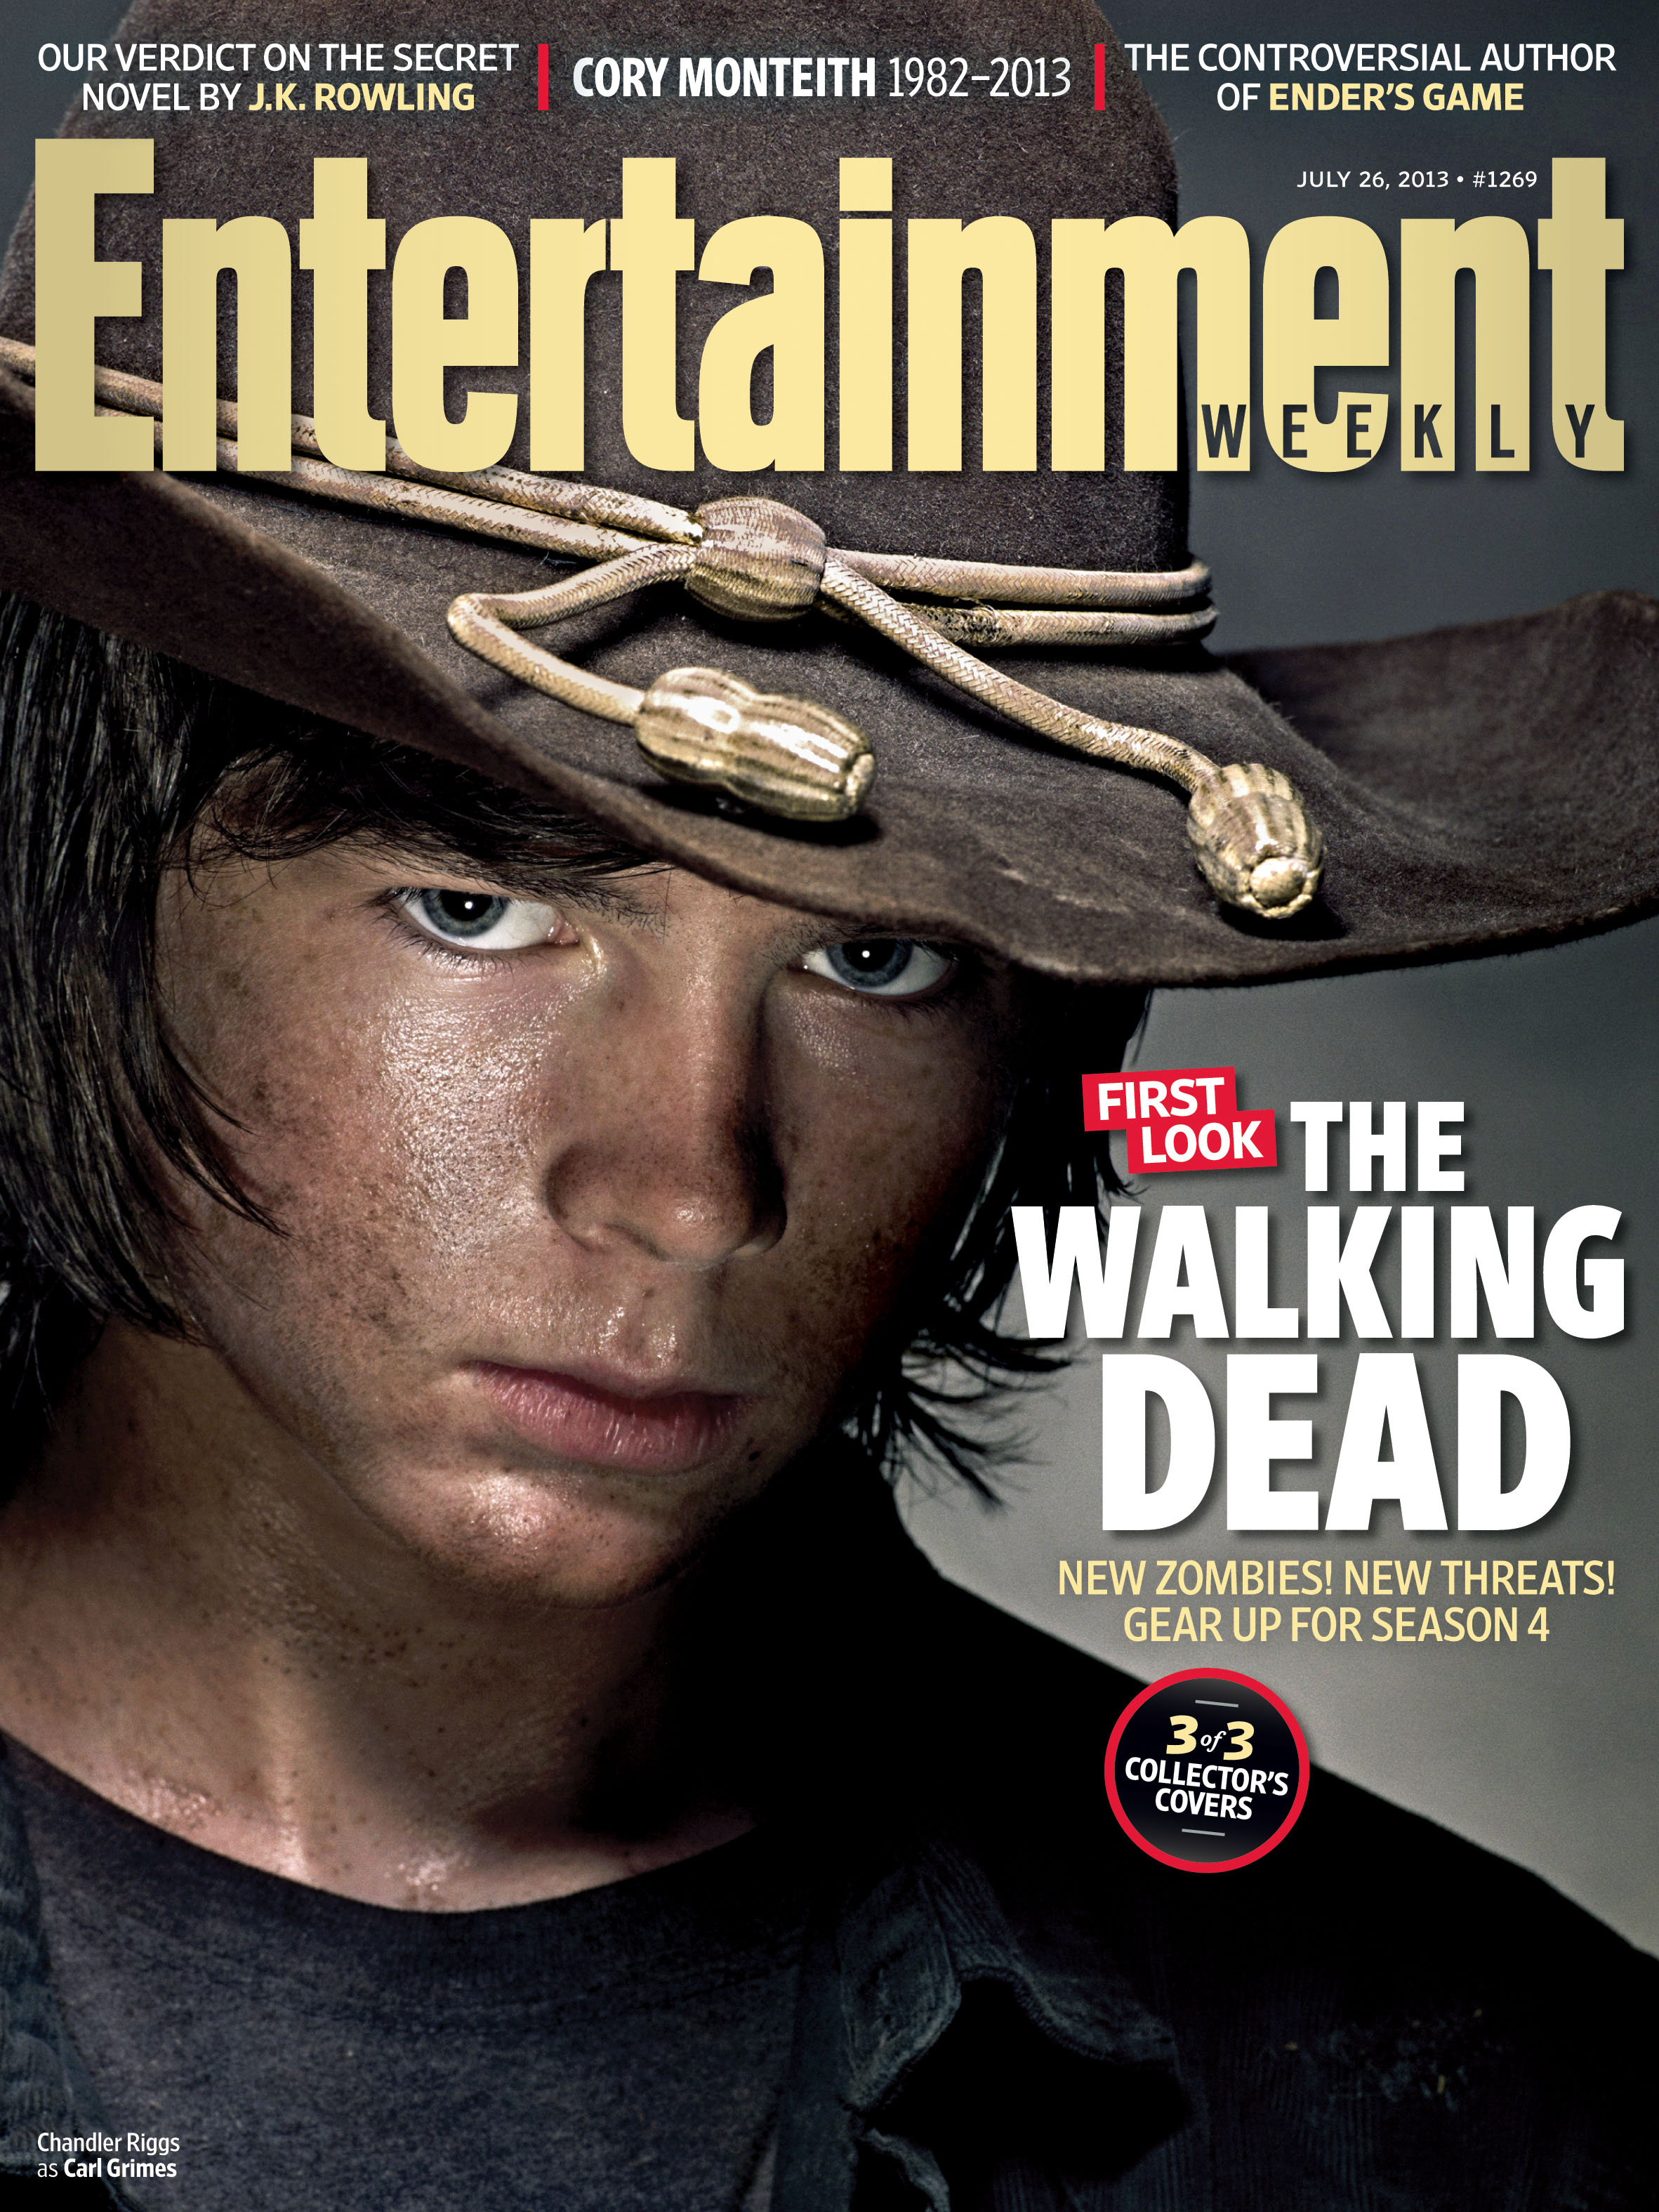 Chandler Riggs for Walking Dead